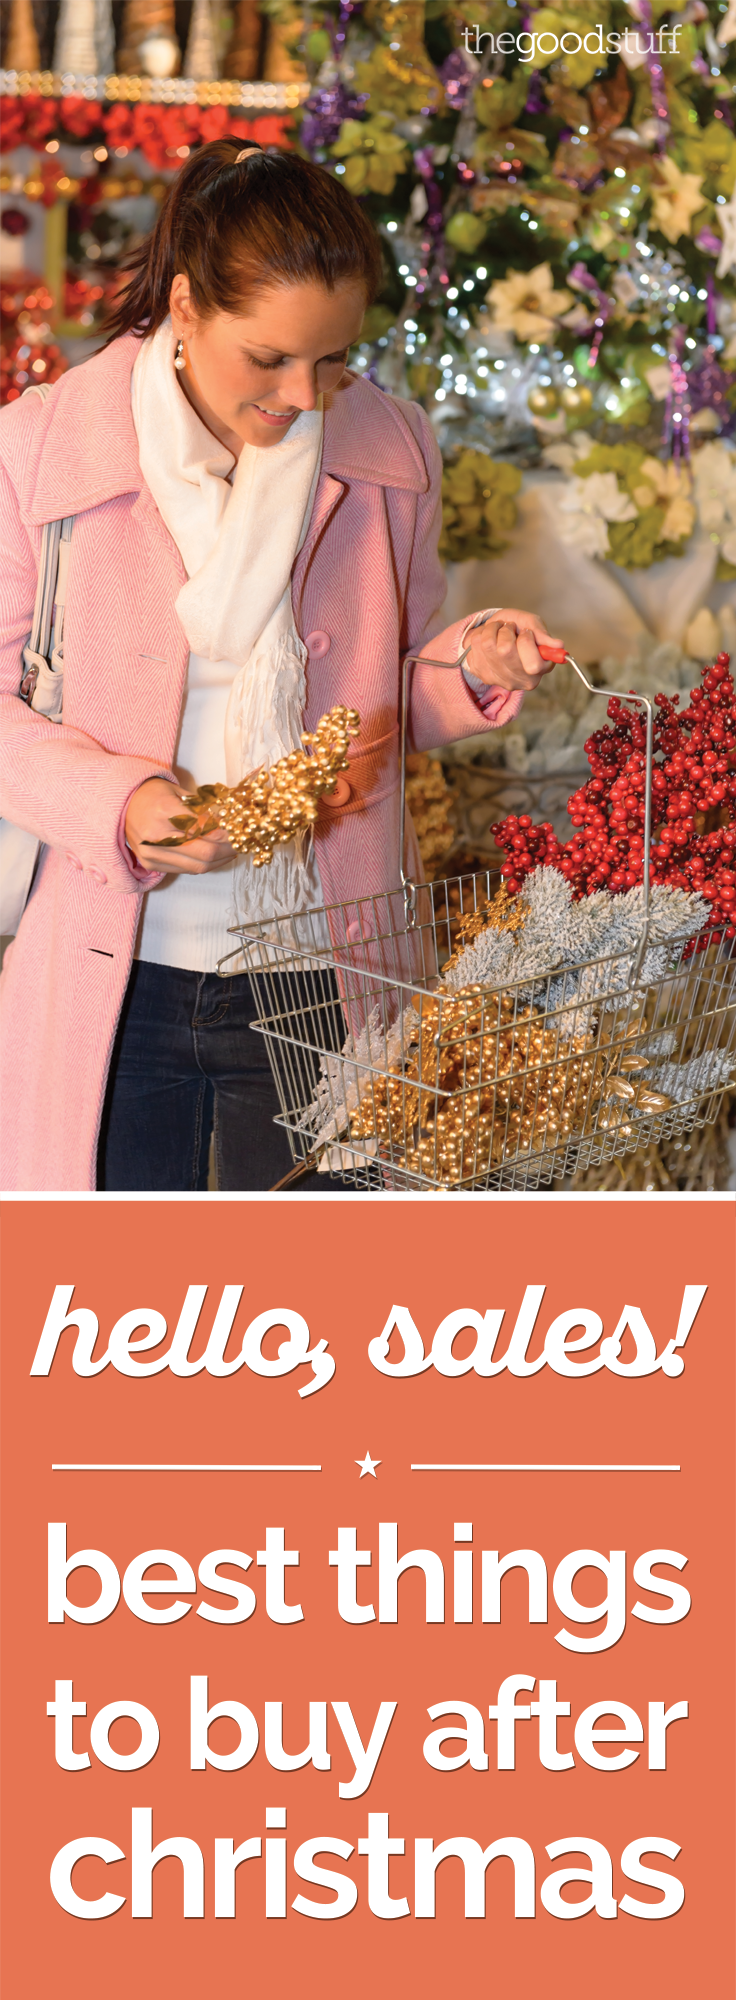 Hello, Sales! 13 Best Things to Buy After Christmas | thegoodstuff